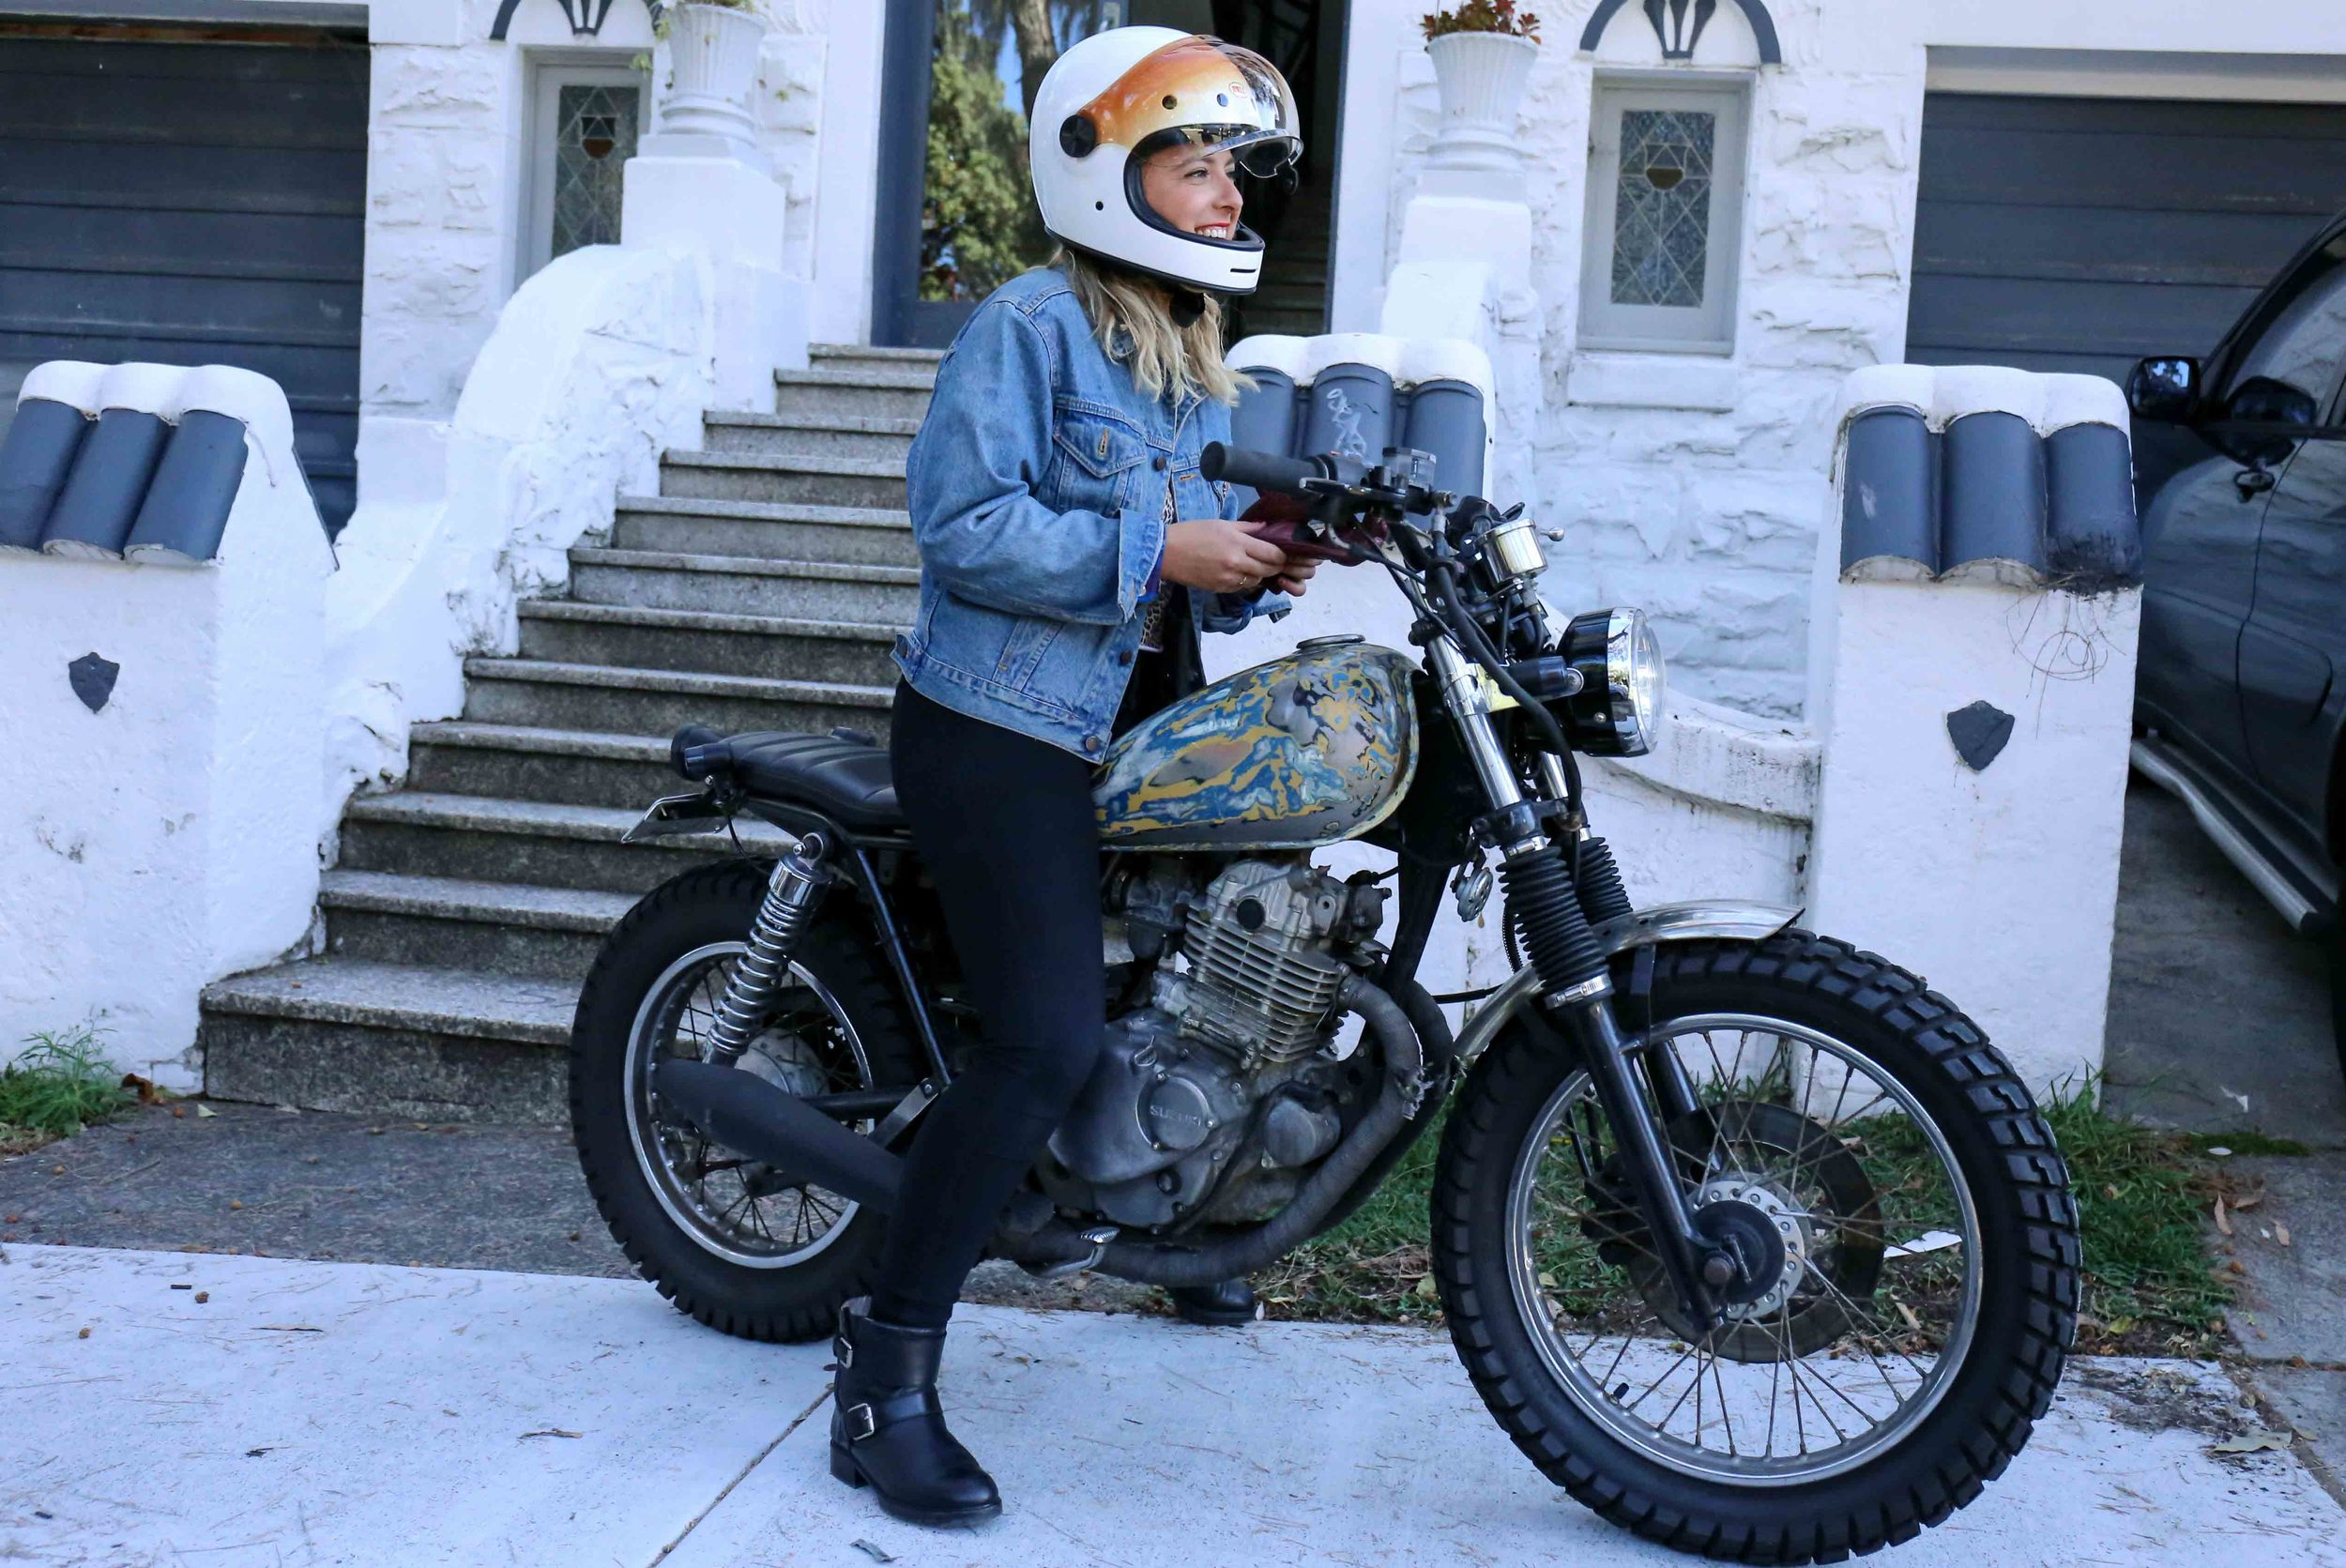 Erica and her GN250 was the perfect size for starting out.